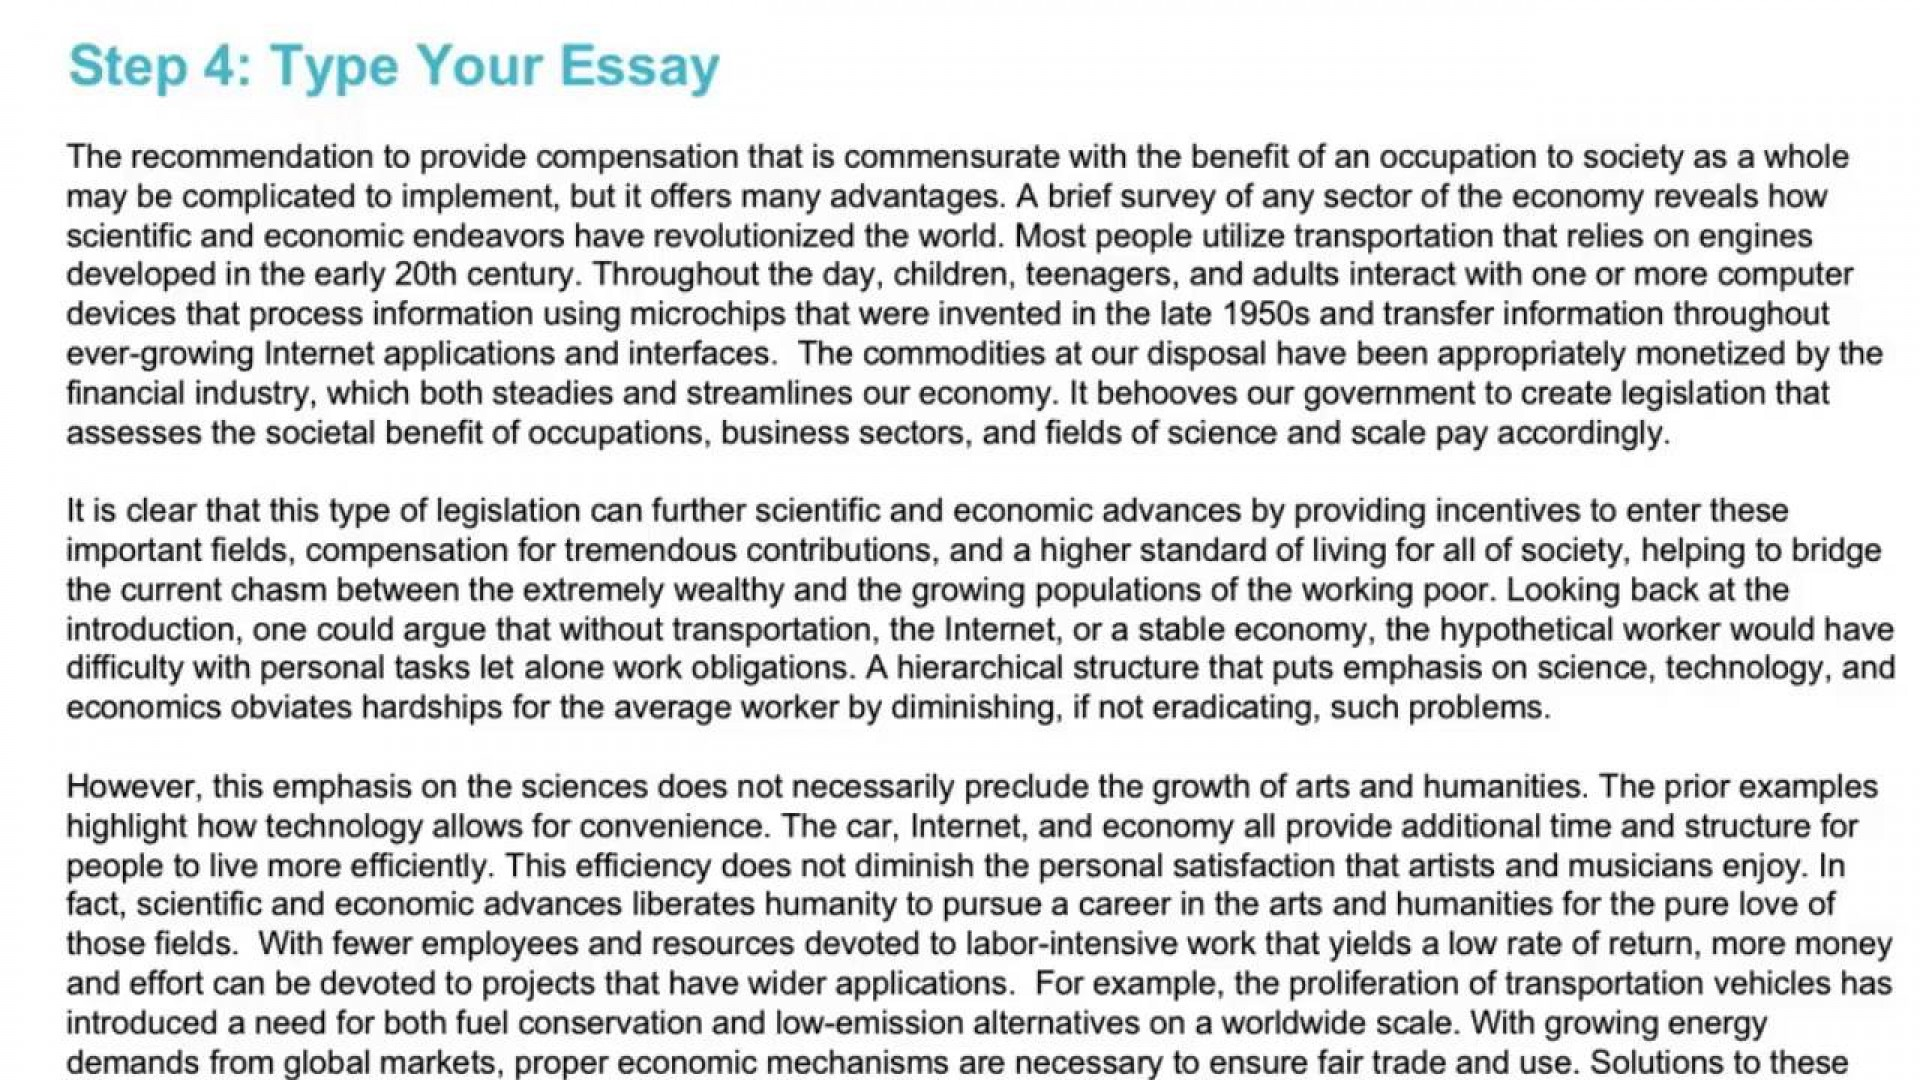 005 Maxresdefault Essay Example How To Write Stunning A Gre Issue Great Analytical Writing Essays 1920